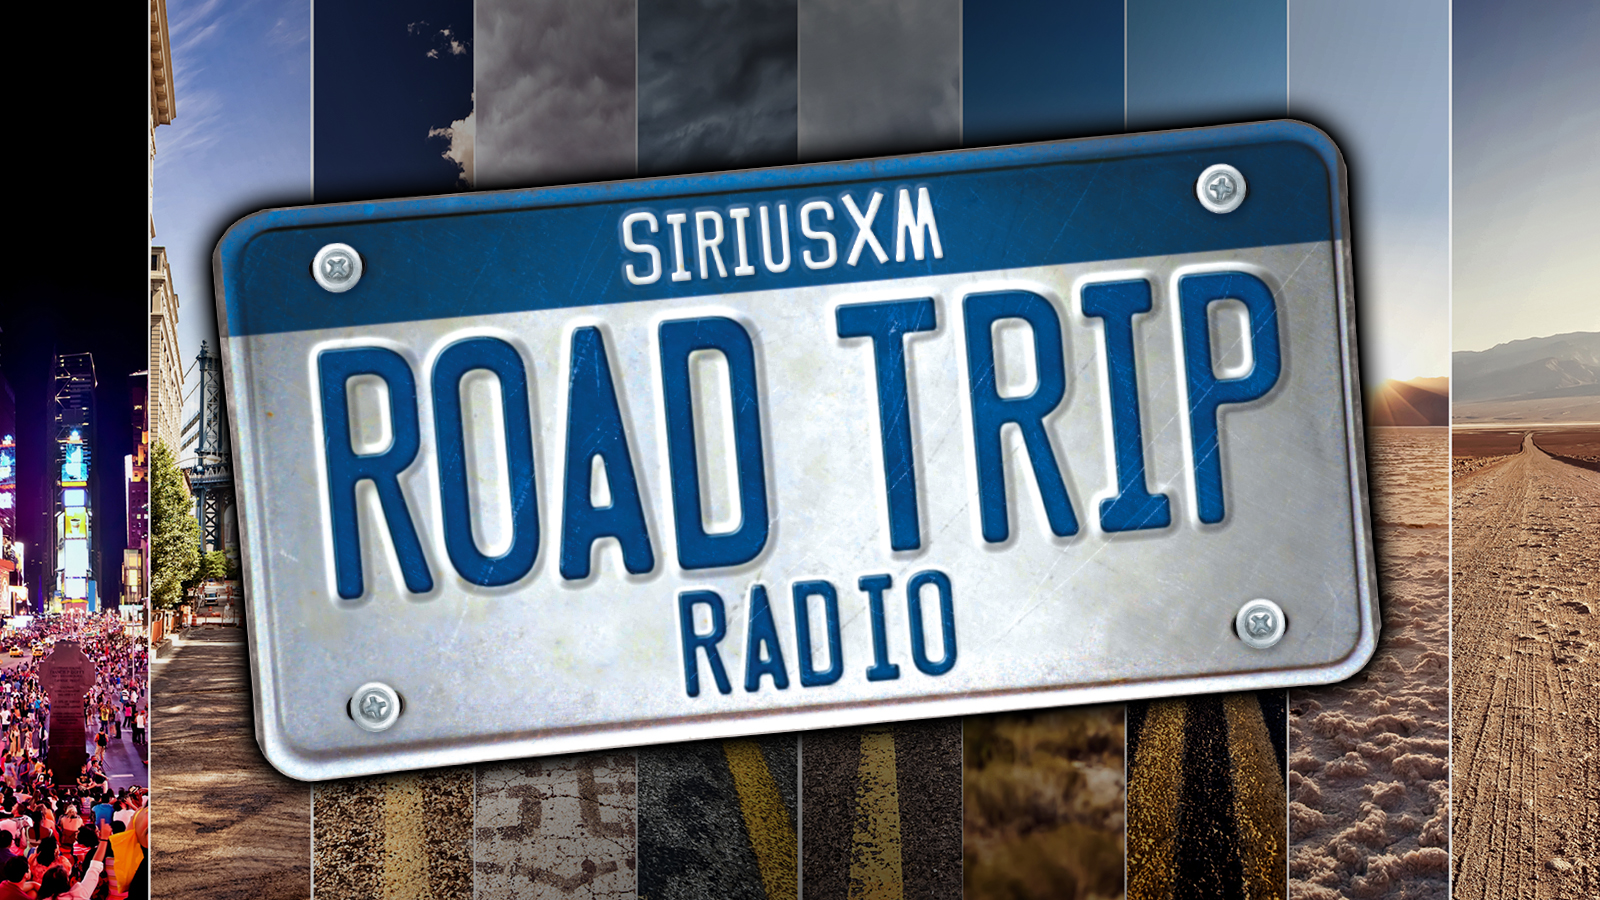 Listen to Road Trip Radio on SiriusXM's Channel 104 during Fourth of July week